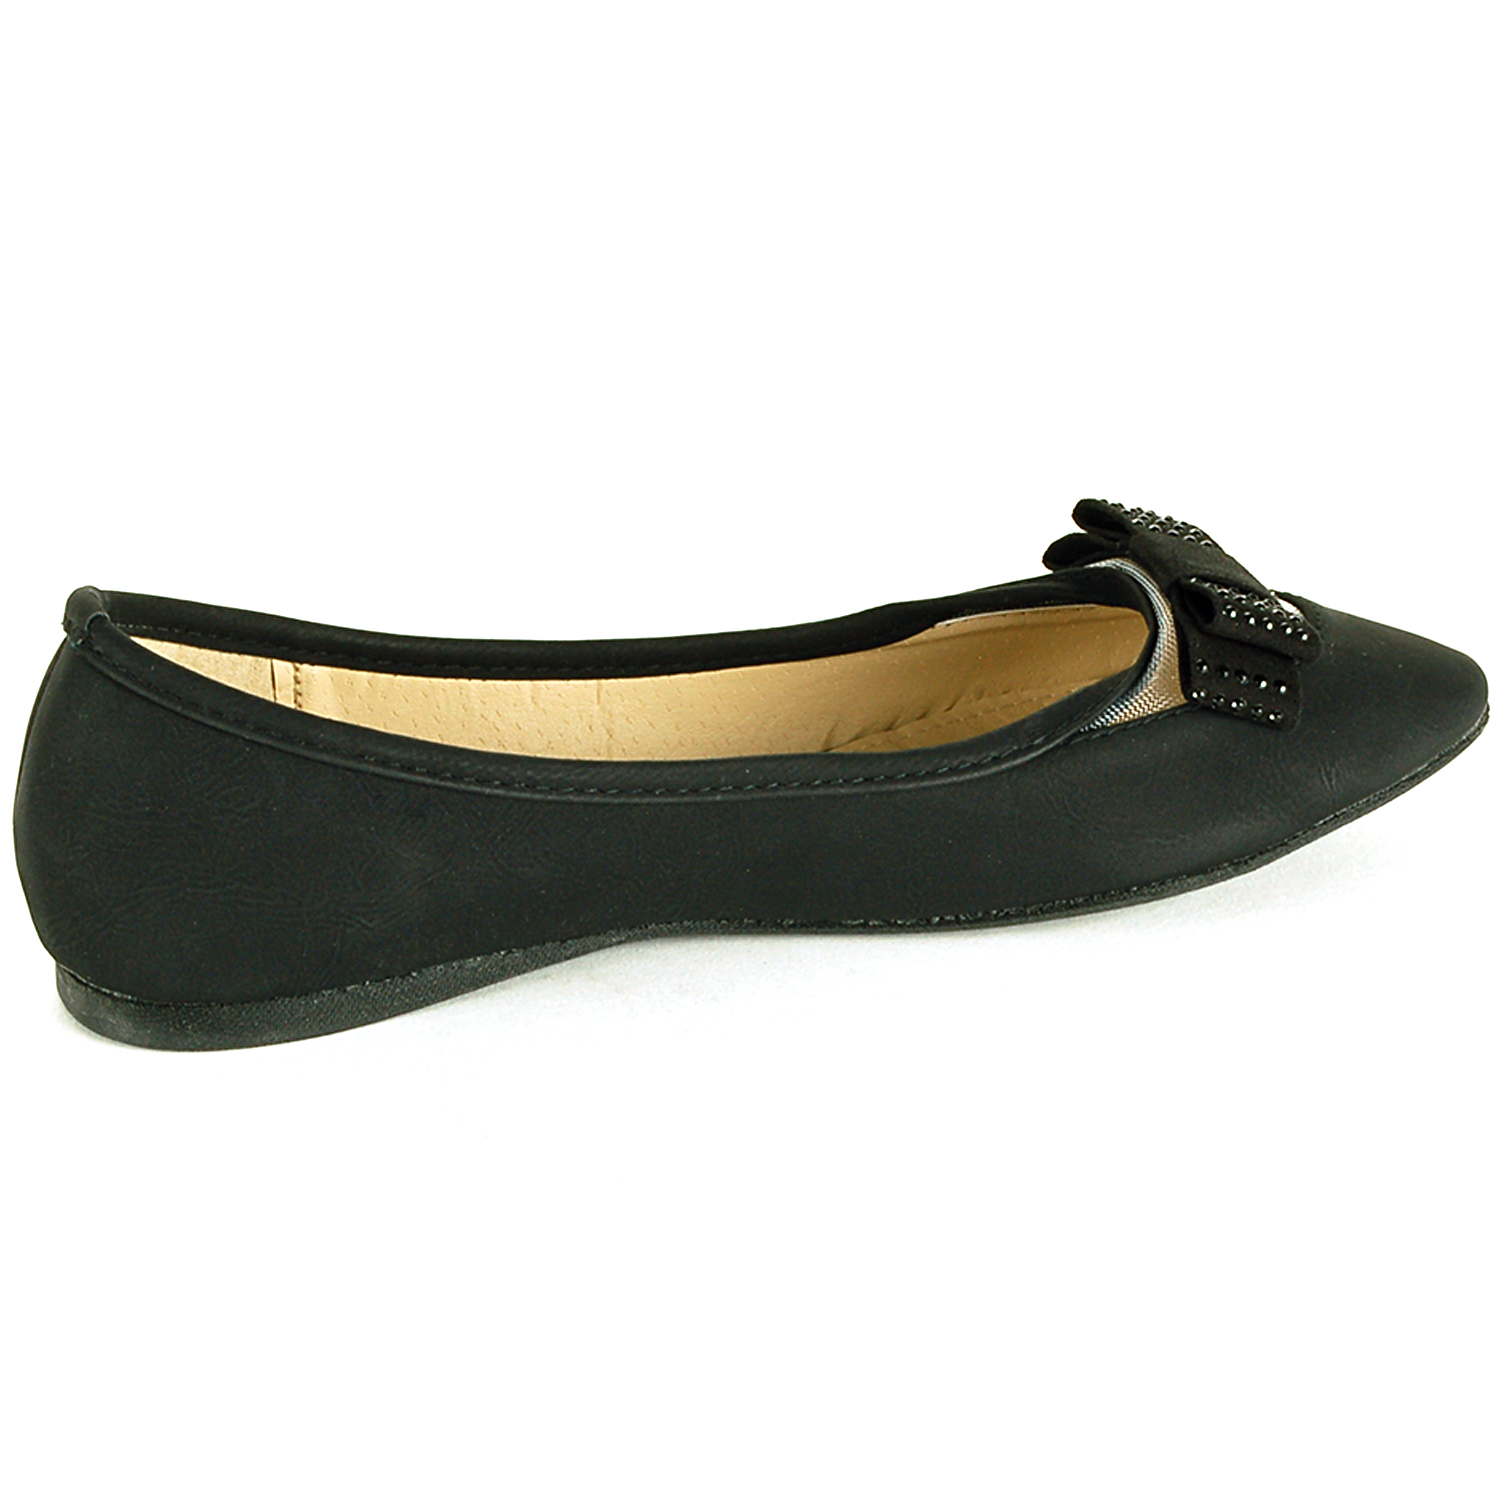 Original EASYSPIRIT2572NEWWomensGitanaBlackDressLoafersShoes6Medium